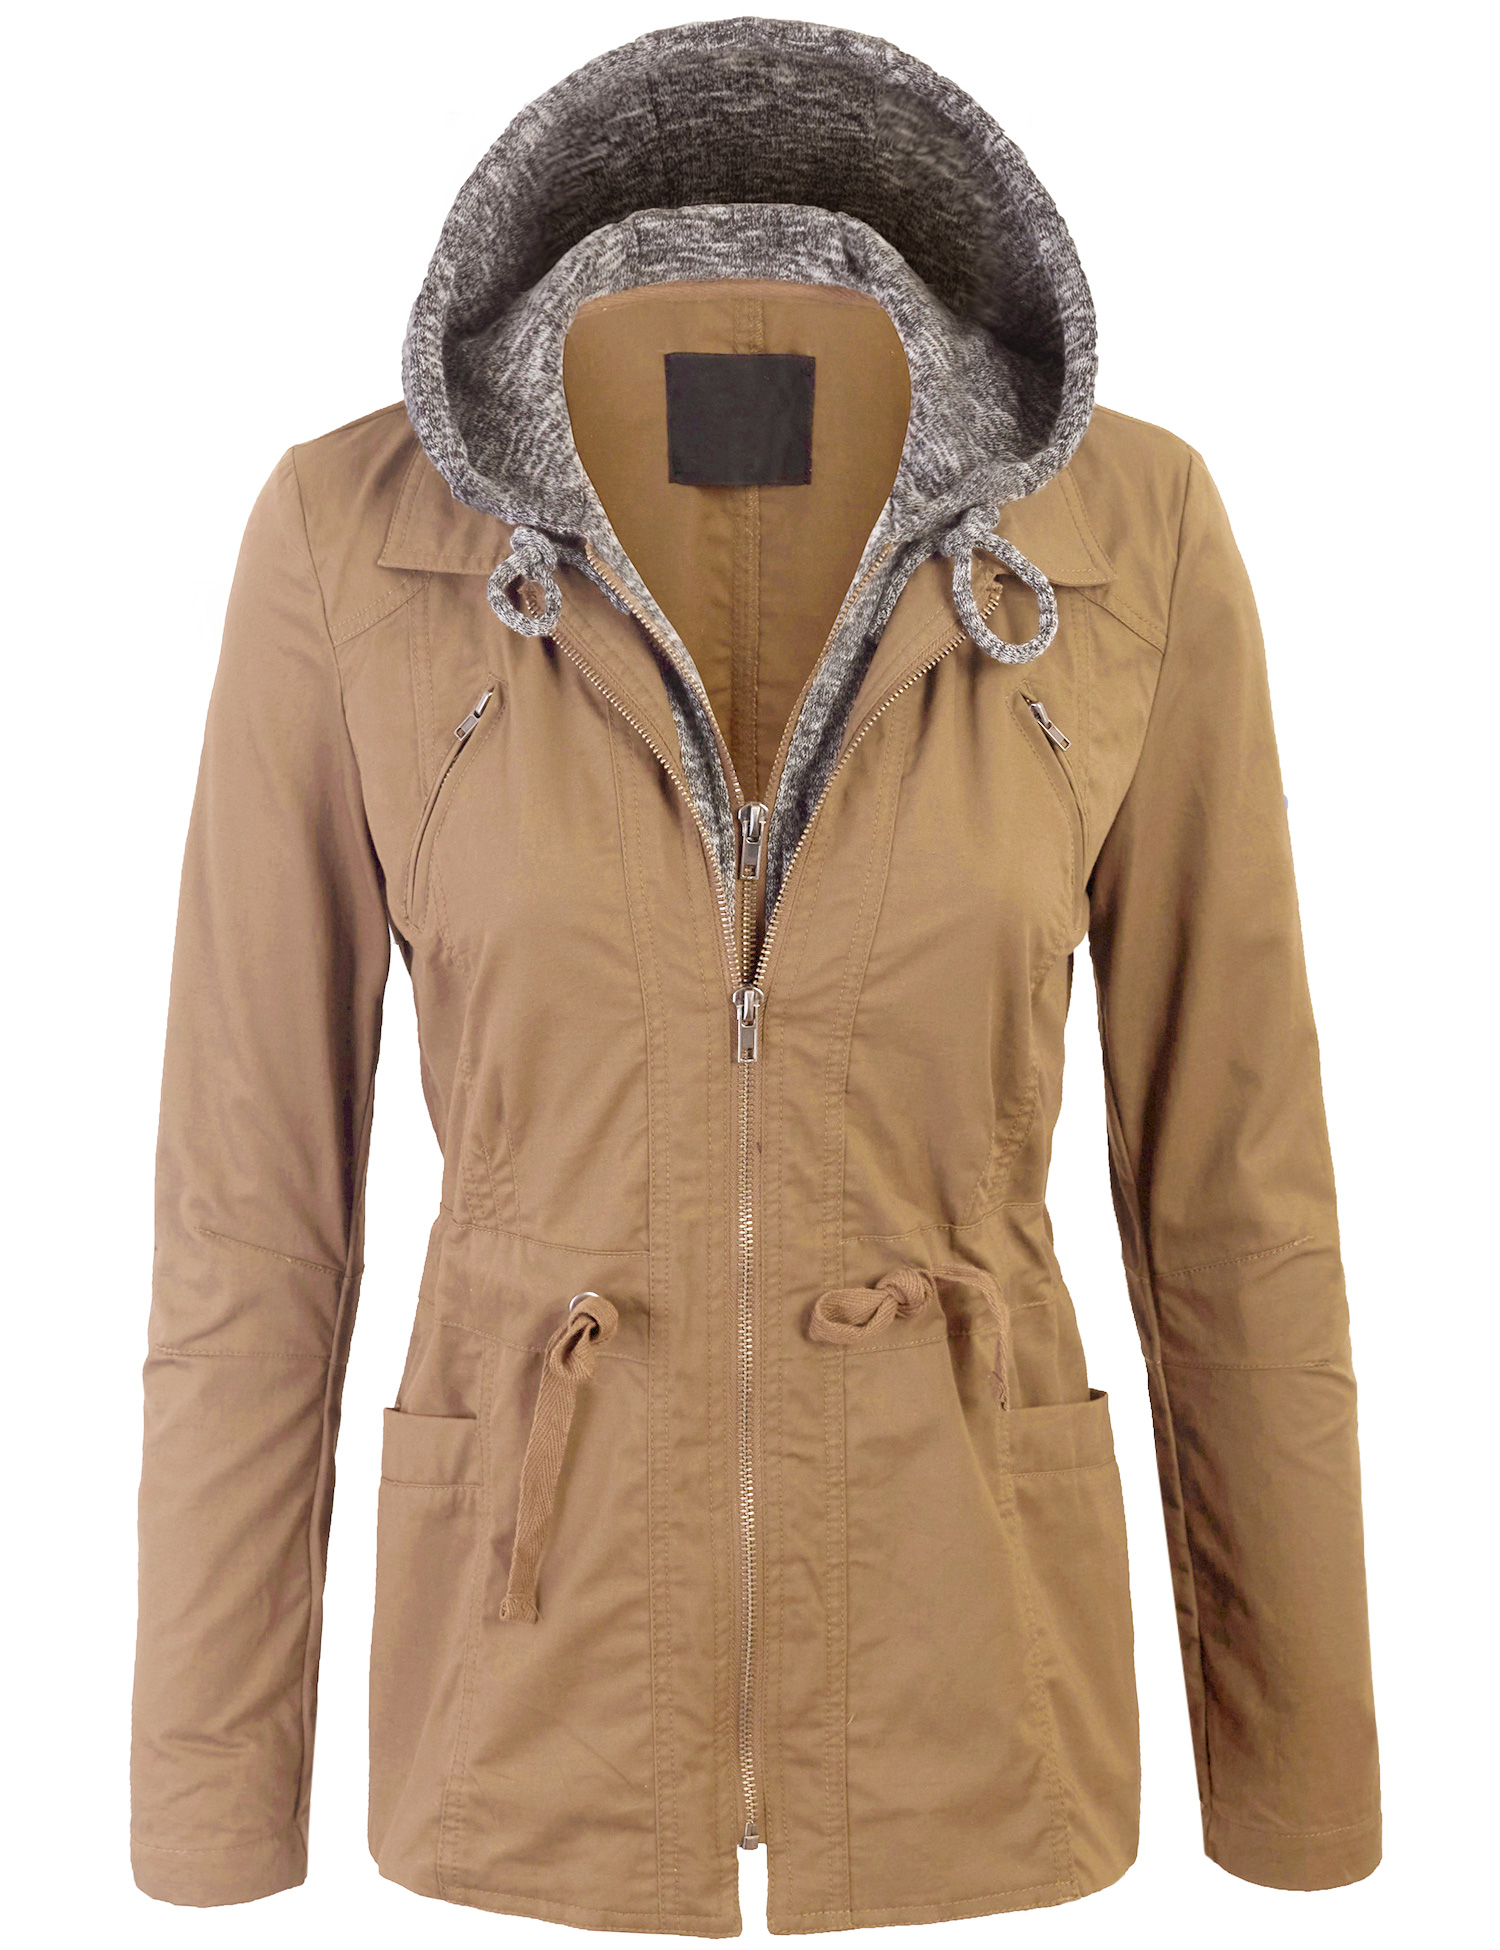 Kogmo Womens Military Anorak Jacket with Knit Hood and Pockets